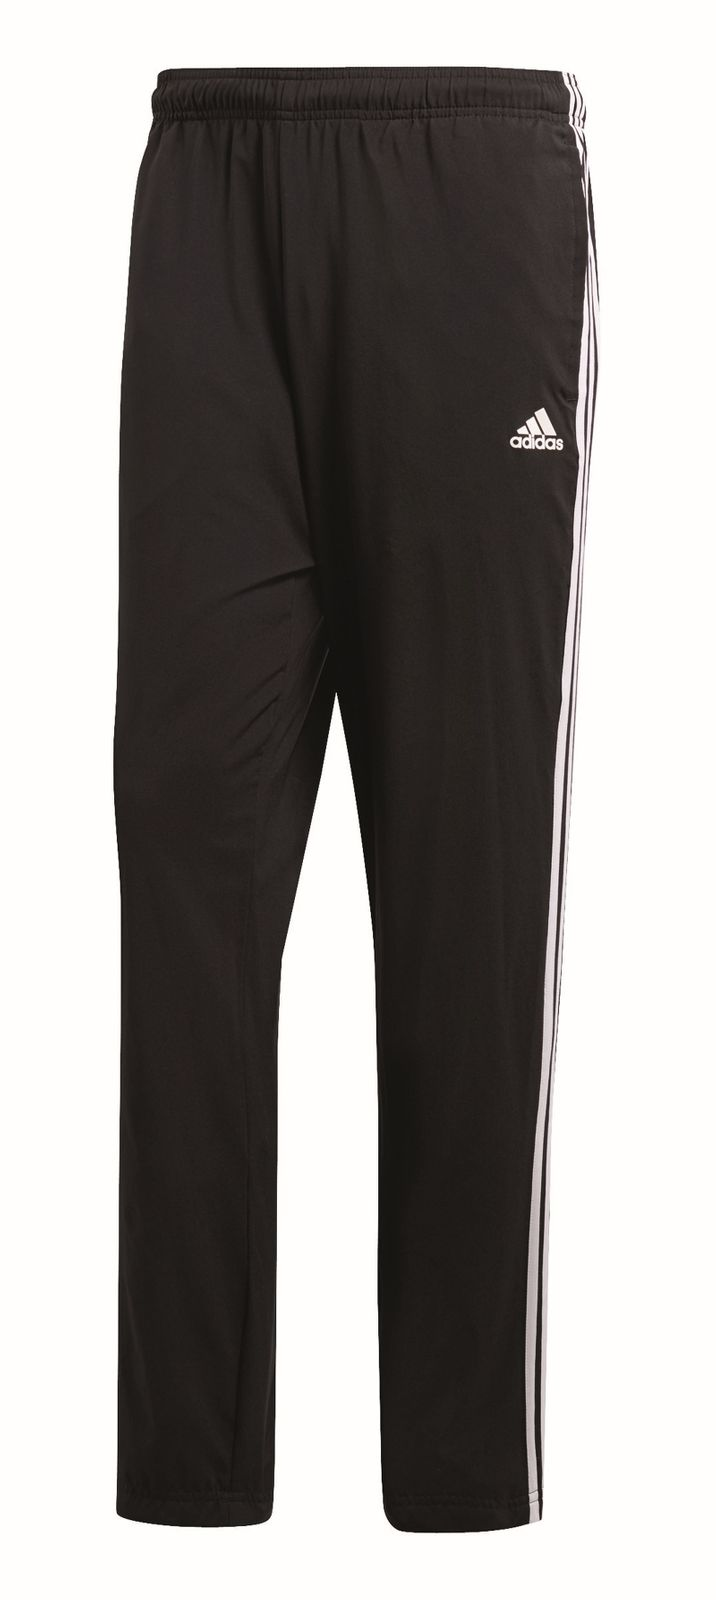 Details about Adidas Performance Men's Tracksuit 3S Woven Light Tracksuit